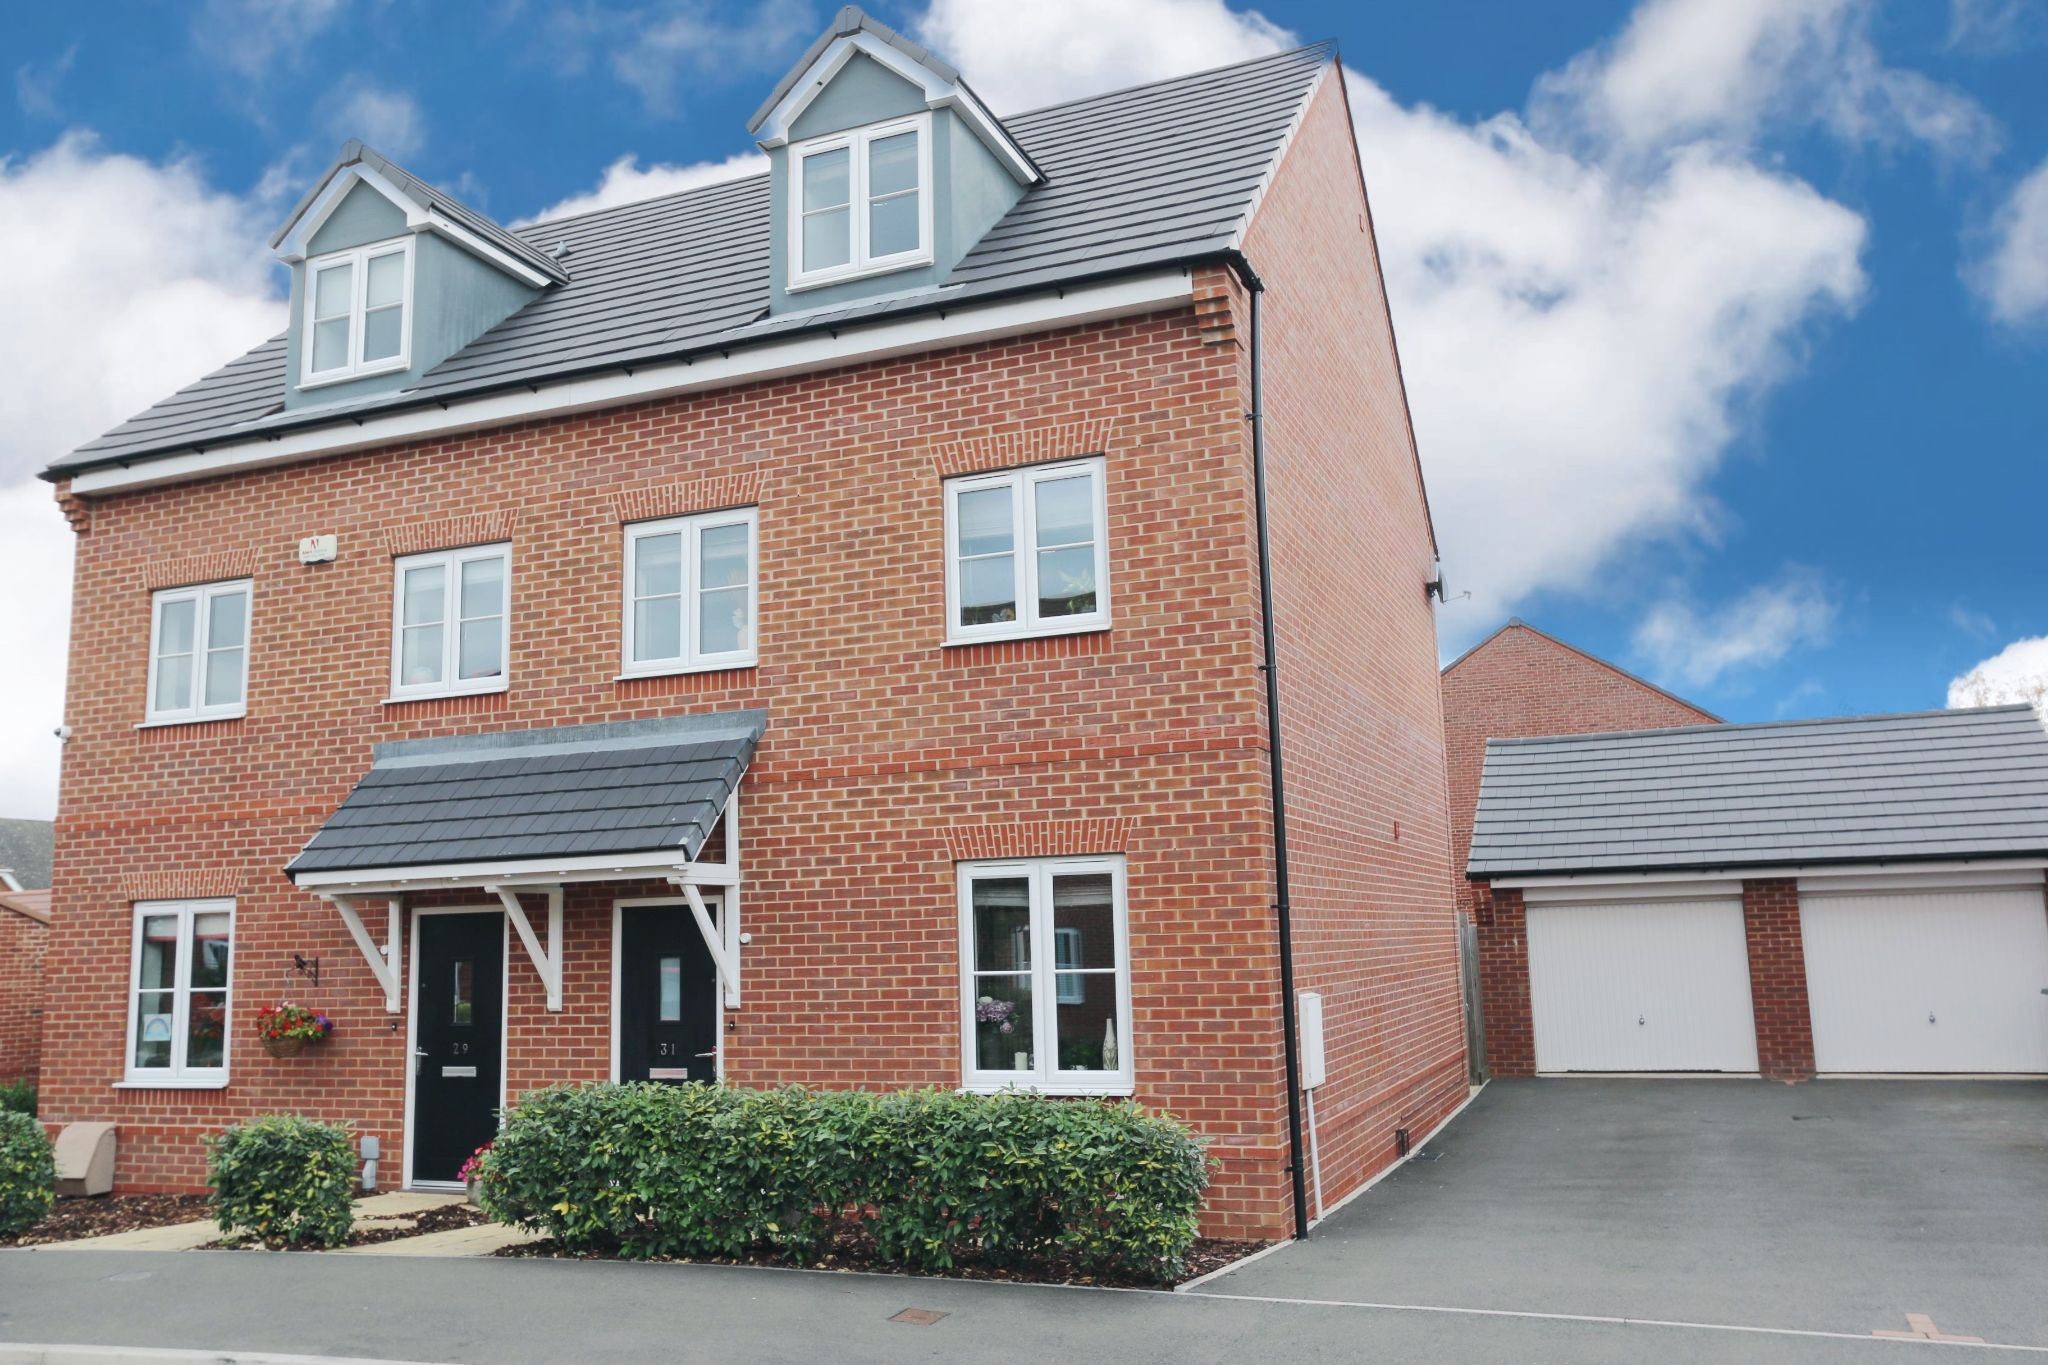 3 bedroom semi-detached house For Sale in Bidford-on-avon, Alcester - Property photograph